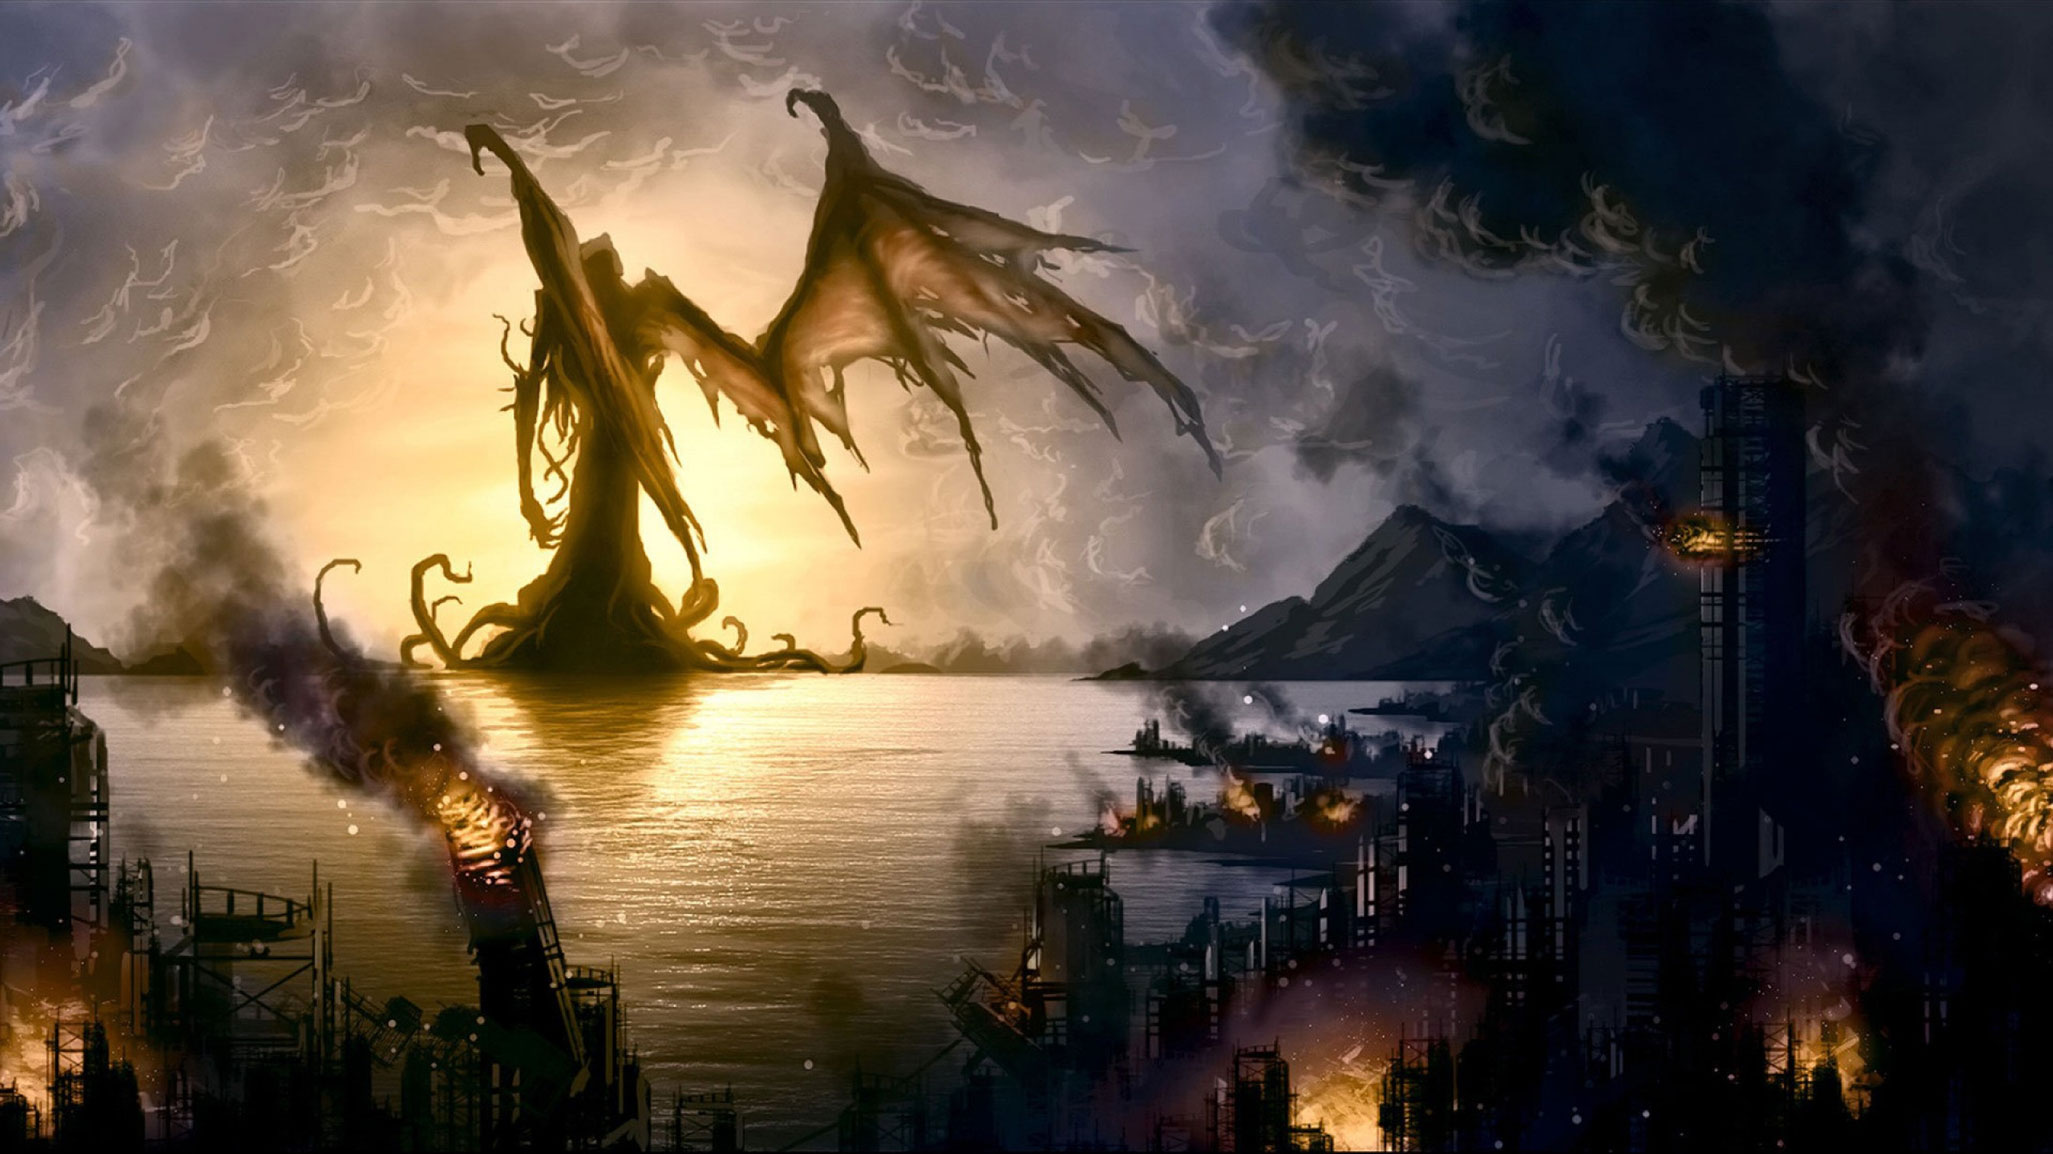 Cthulhu departing a burning city/Cthulhu mk2